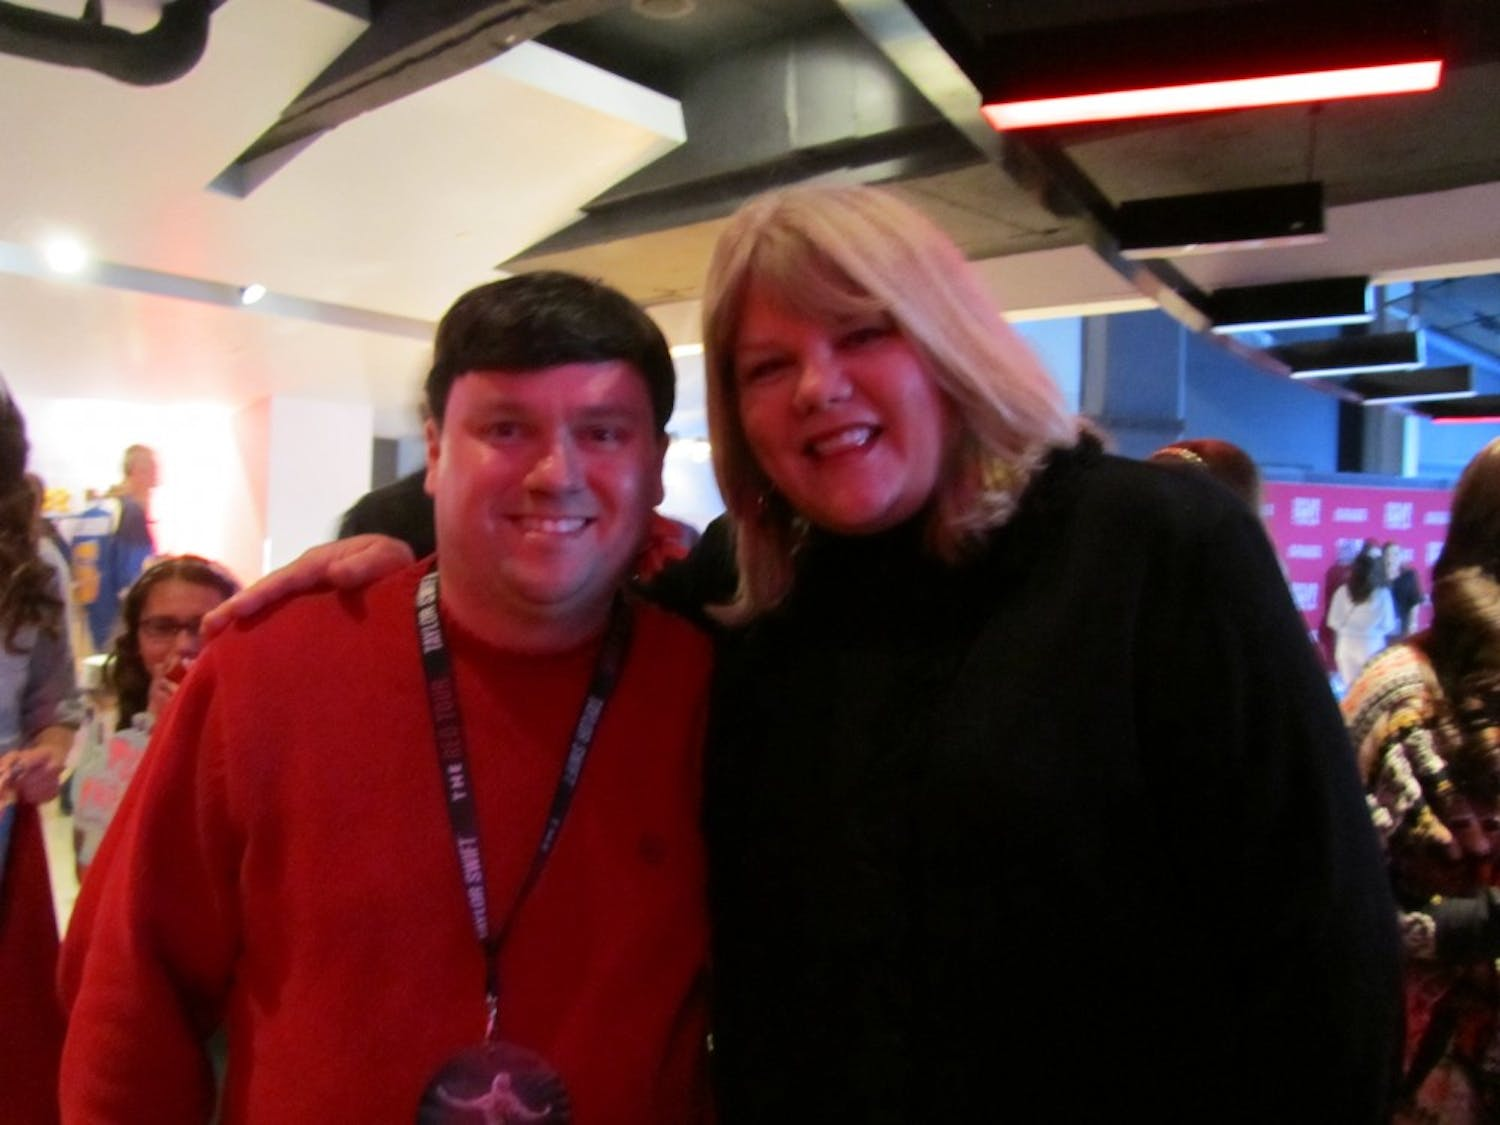 """Political science professor Shawn Donahue stands with Taylor Swift's mom during the St. Louis stop on the """"Red Tour."""""""